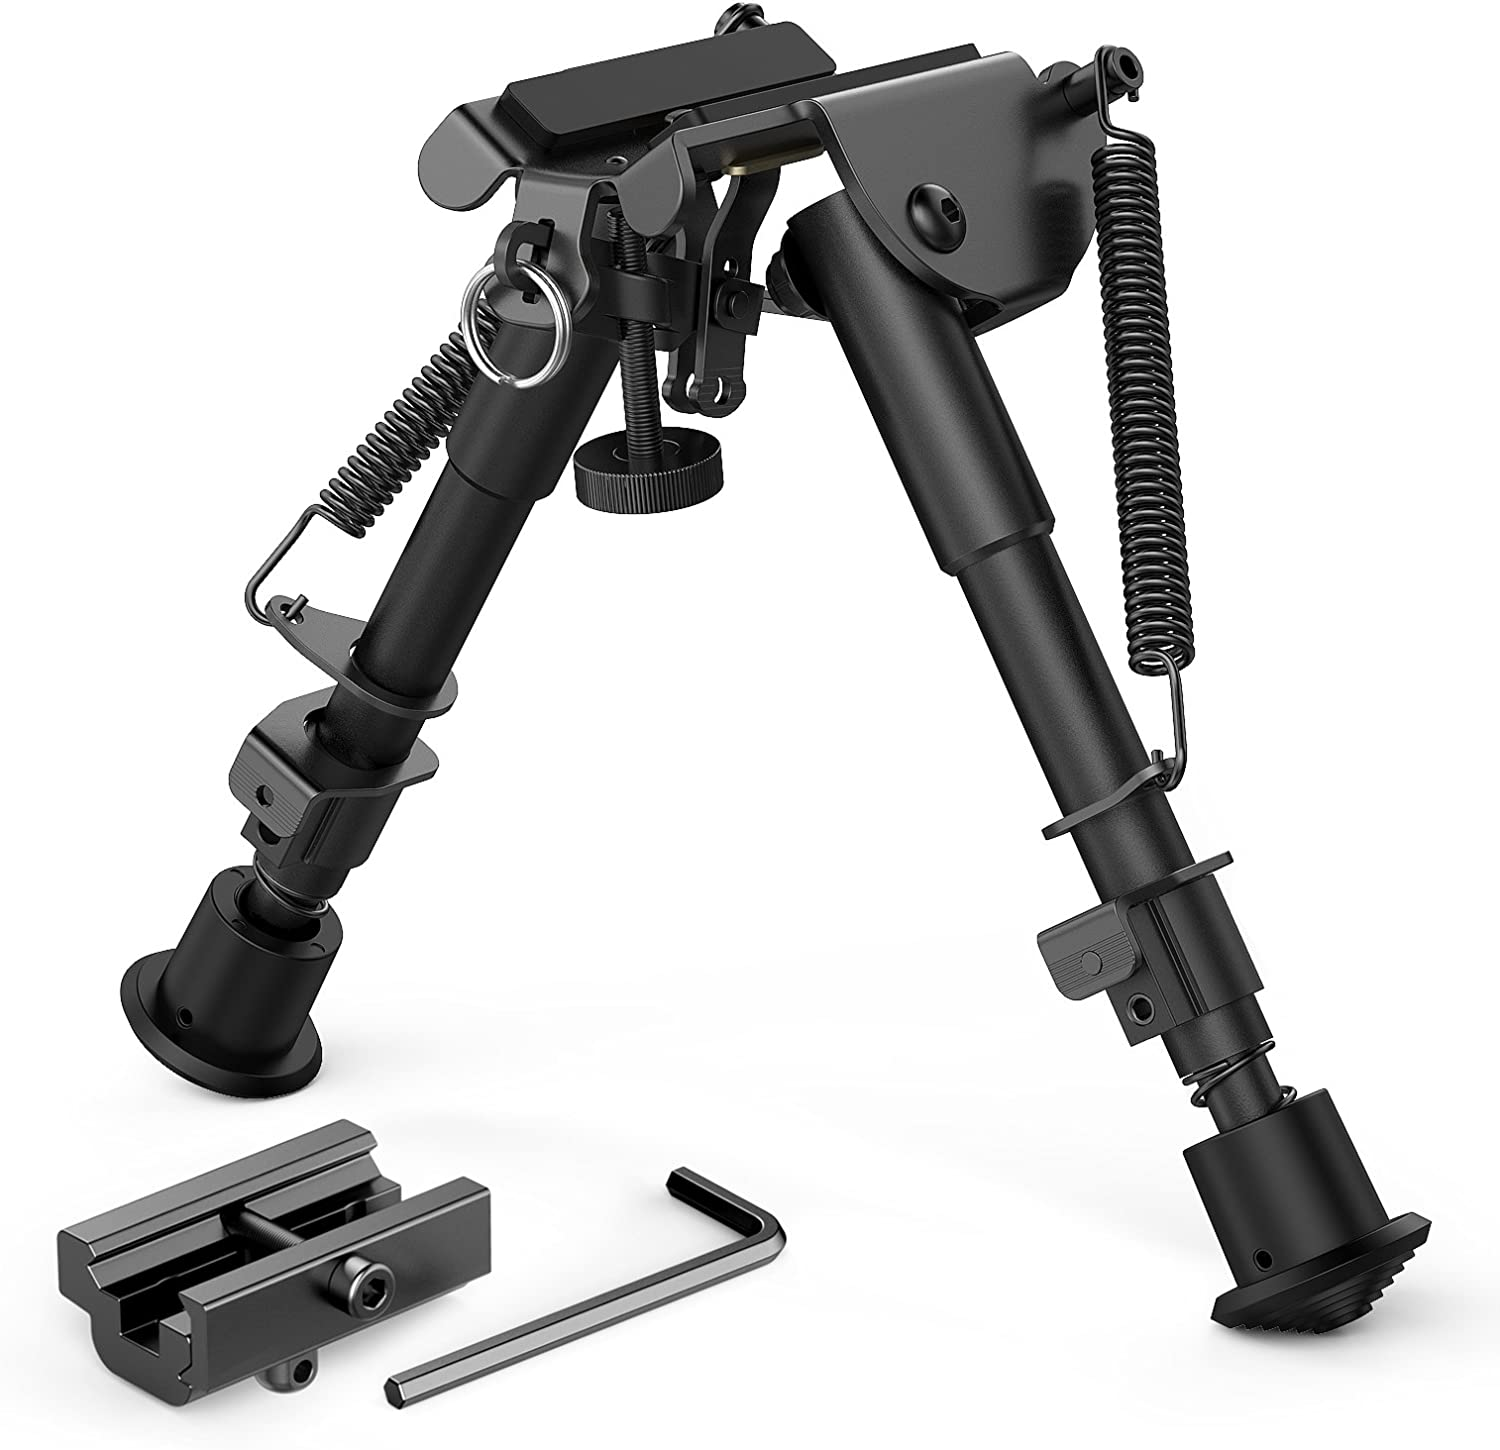 XAegis Large special price !! 2 in specialty shop 1 Bipod 6 Rifle Adjustable to Inch with 9